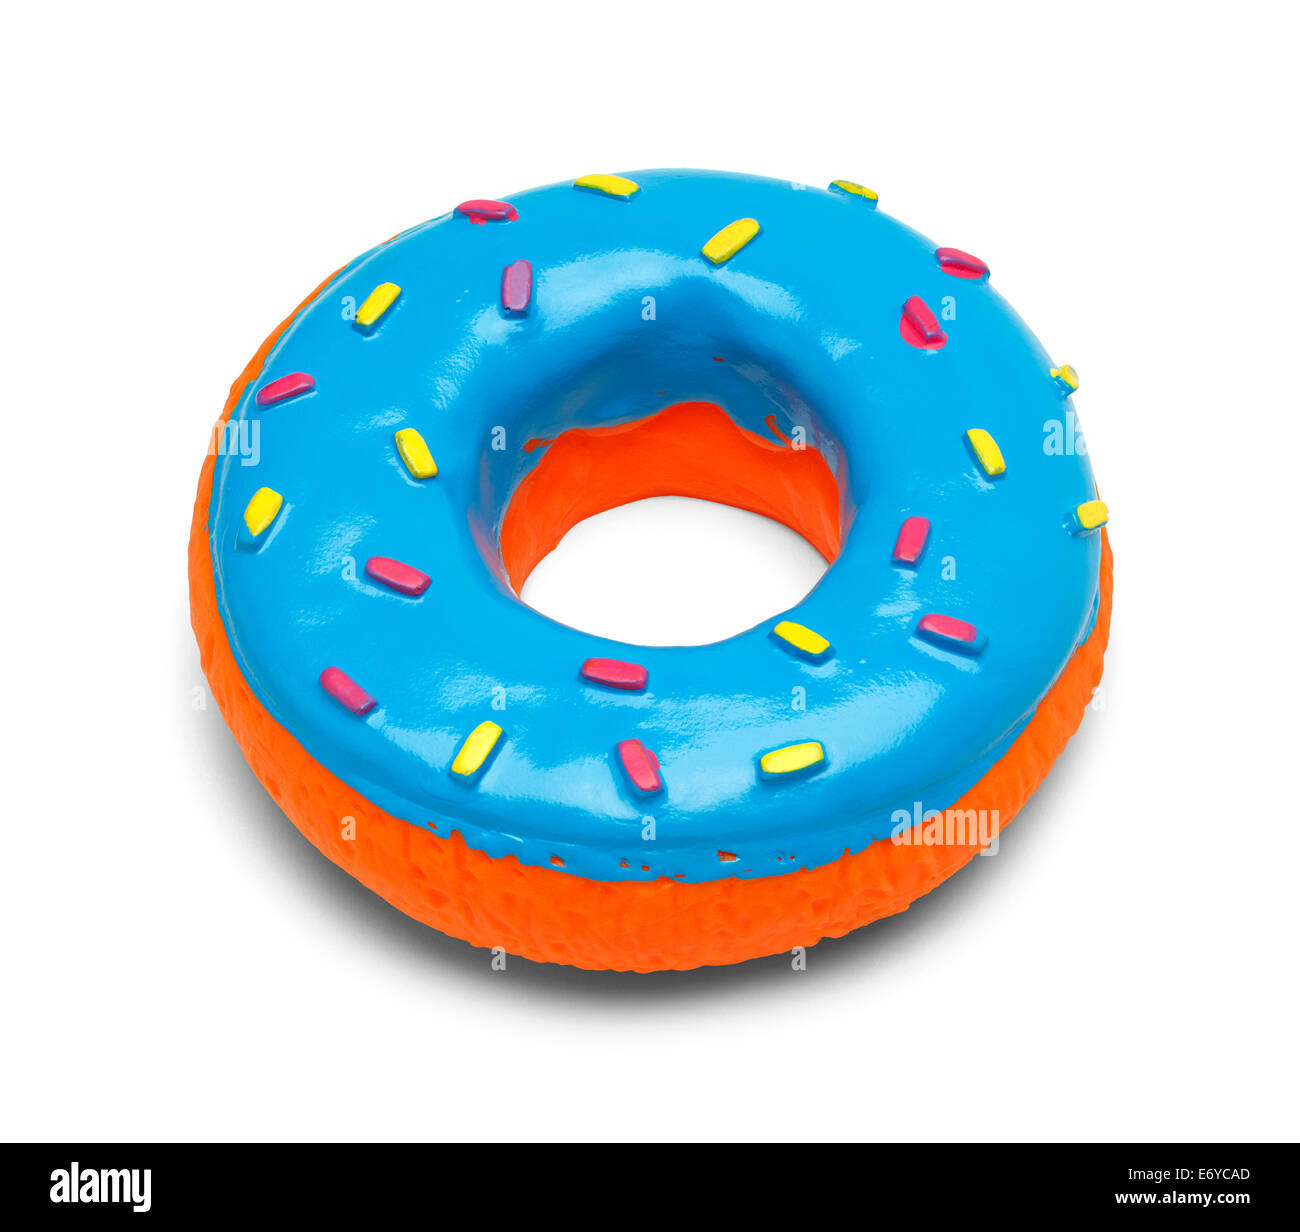 Squeaky Blue Donut with Sprinkles Isolated on White Background. - Stock Image